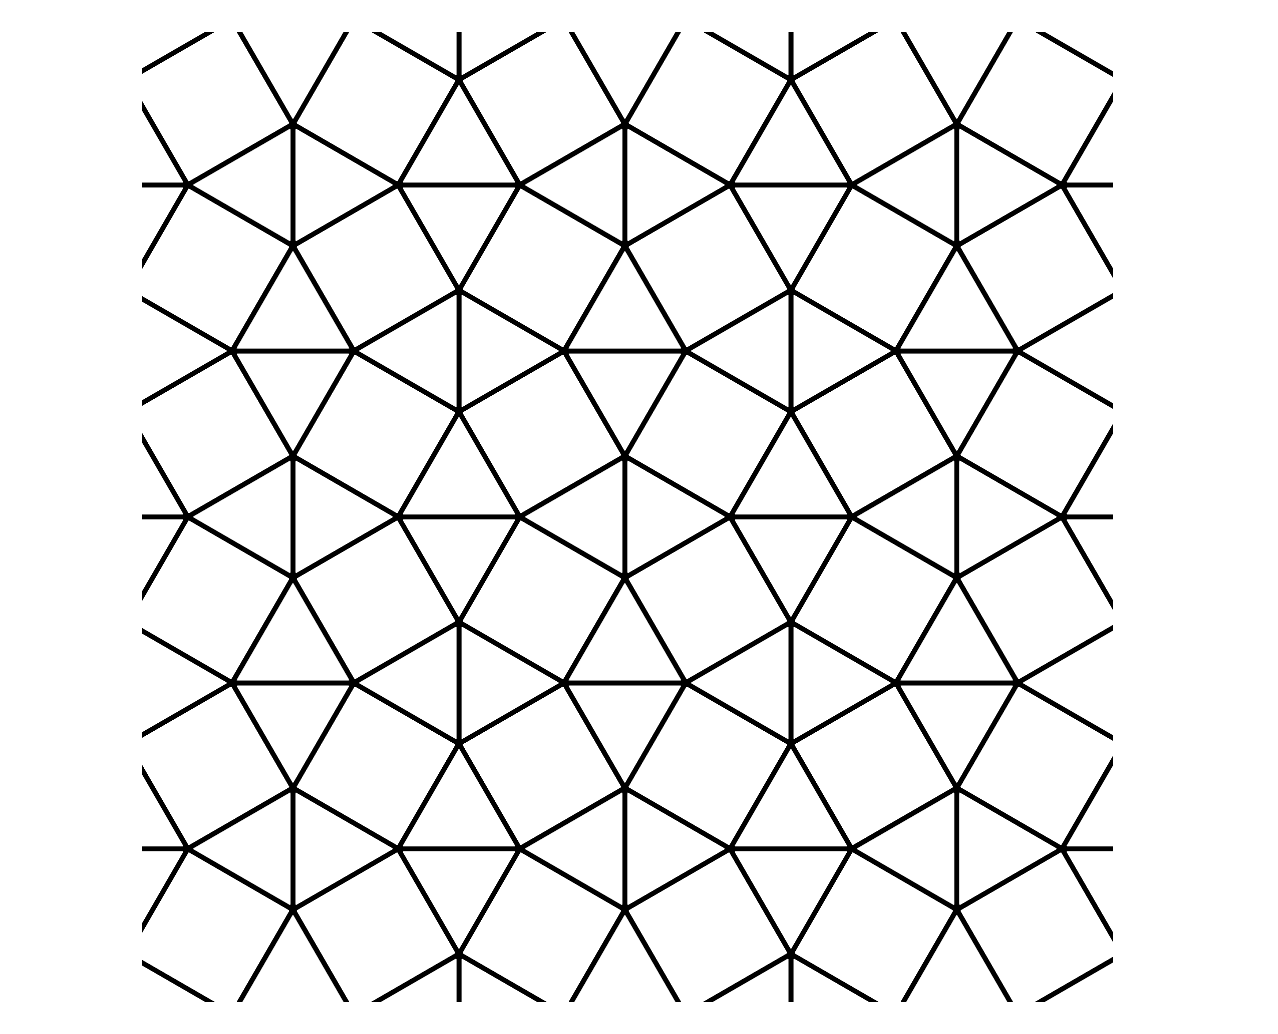 free tessellation coloring pages | Geometric Tessellations Coloring Pages - Coloring Home